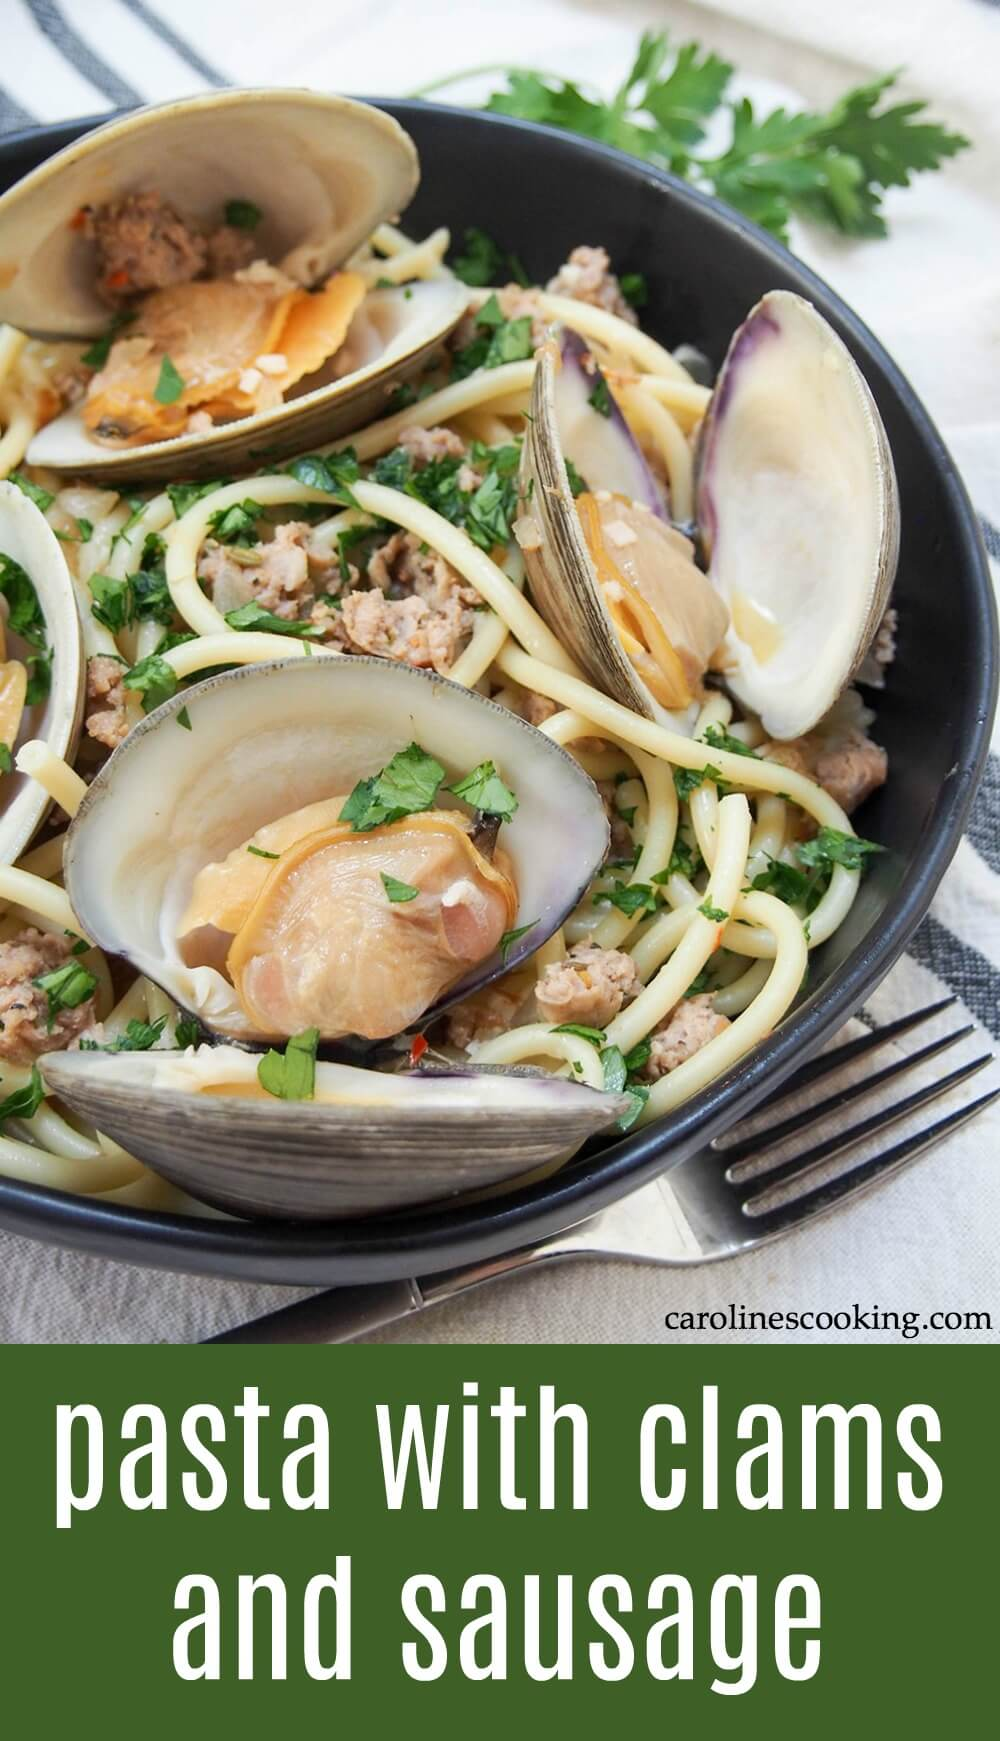 With a bit of a kick from the spicy sausage and delicate clams, all tied together with wine and garlic and delicious Garofalo Pasta, this dish is an easy fancy-feeling meal! You don't need too many ingredients to make this quick meal which is a tasty way to change up pasta night. #ad #pasta #clams #italianfood #LetOurItalyIn #PastaGarofaloUSA